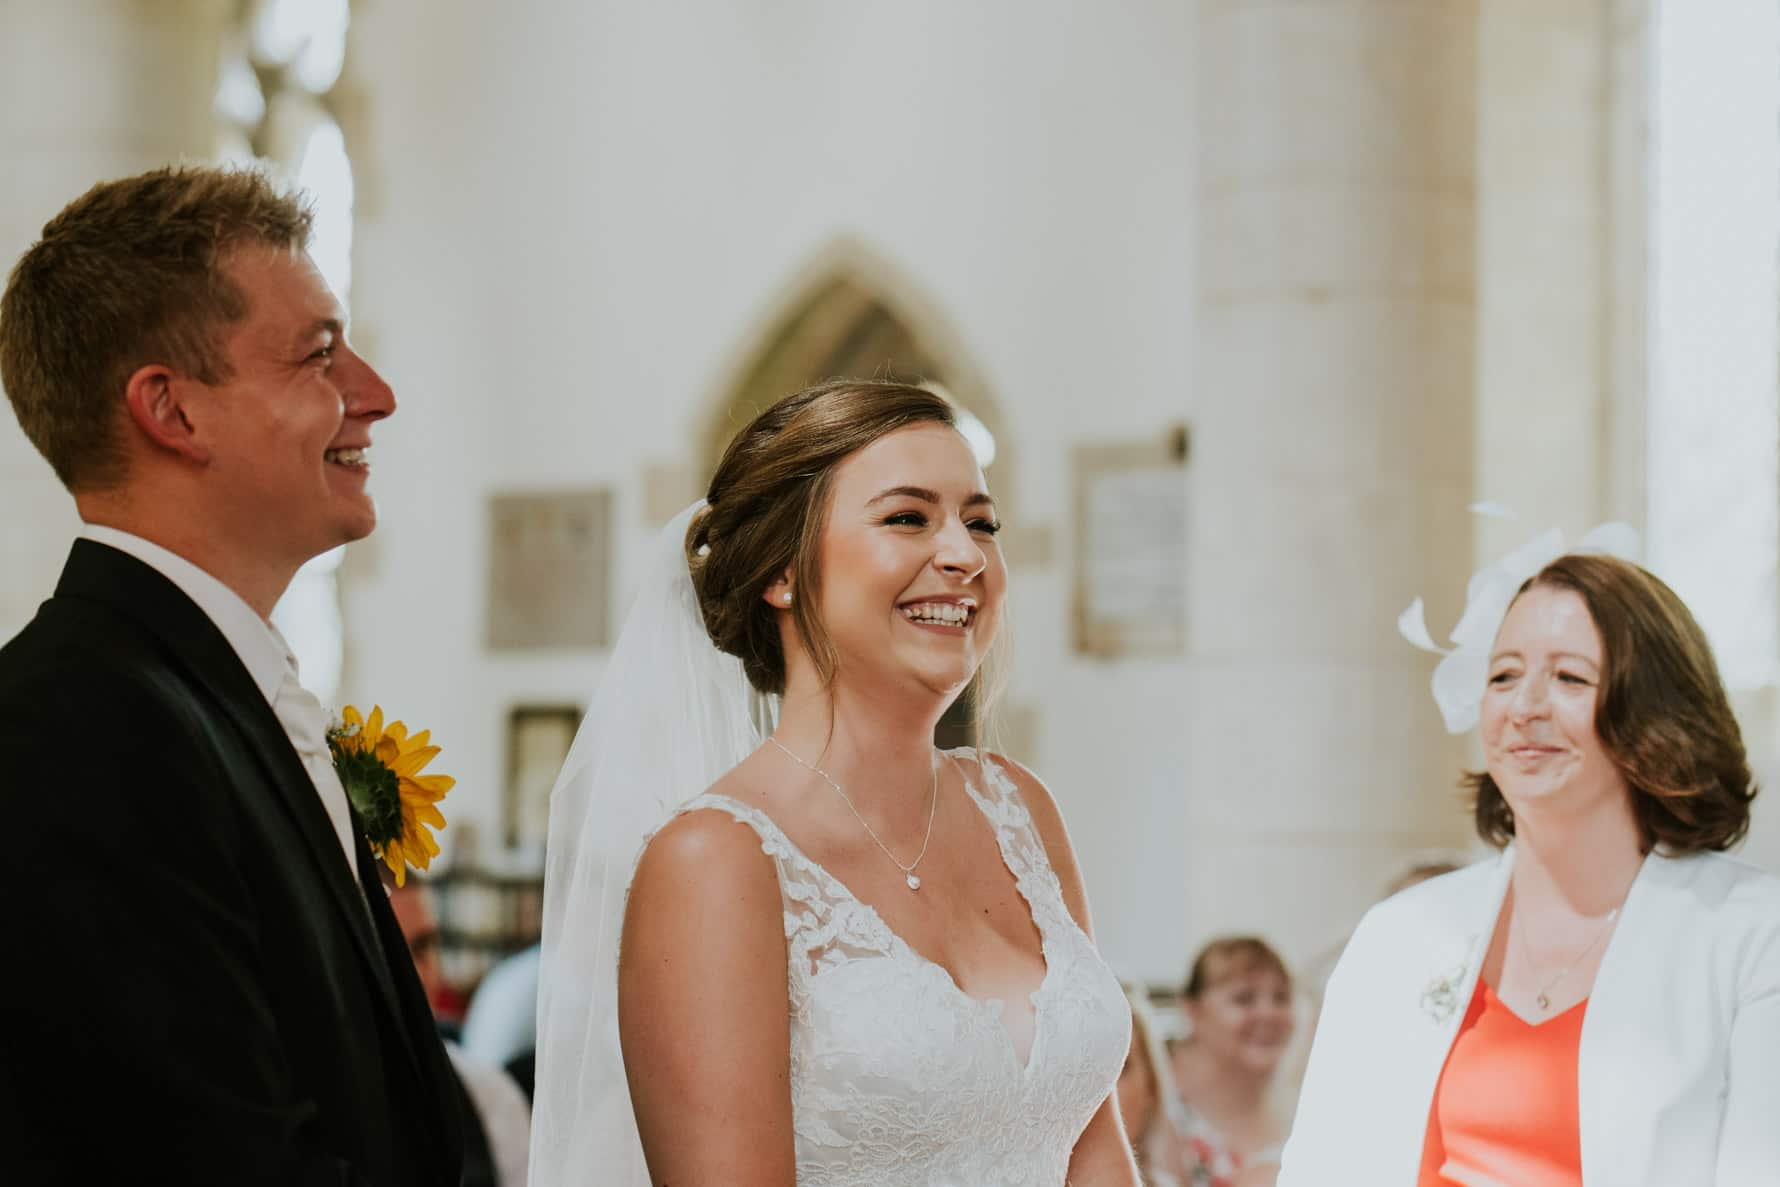 Bride smiling during a wedding ceremony